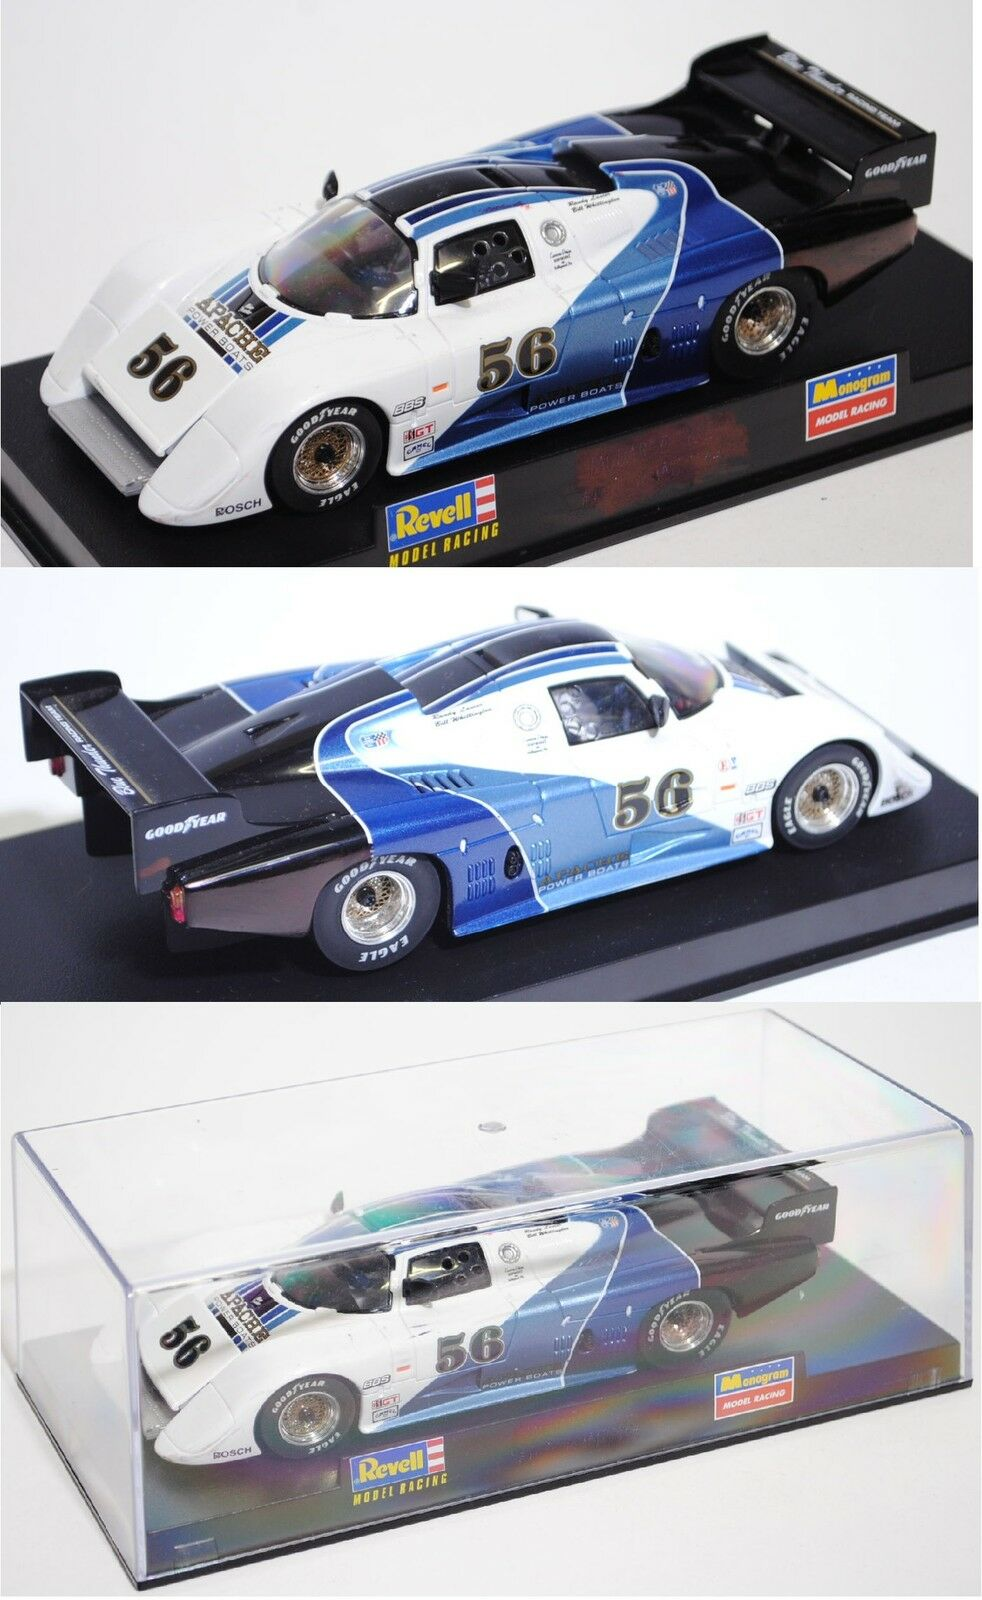 REVELL 08373 MARCH 84  G (83 g) - Chevrolet, IMSA GTP, Lanier Whittington, 1 32  bon shopping